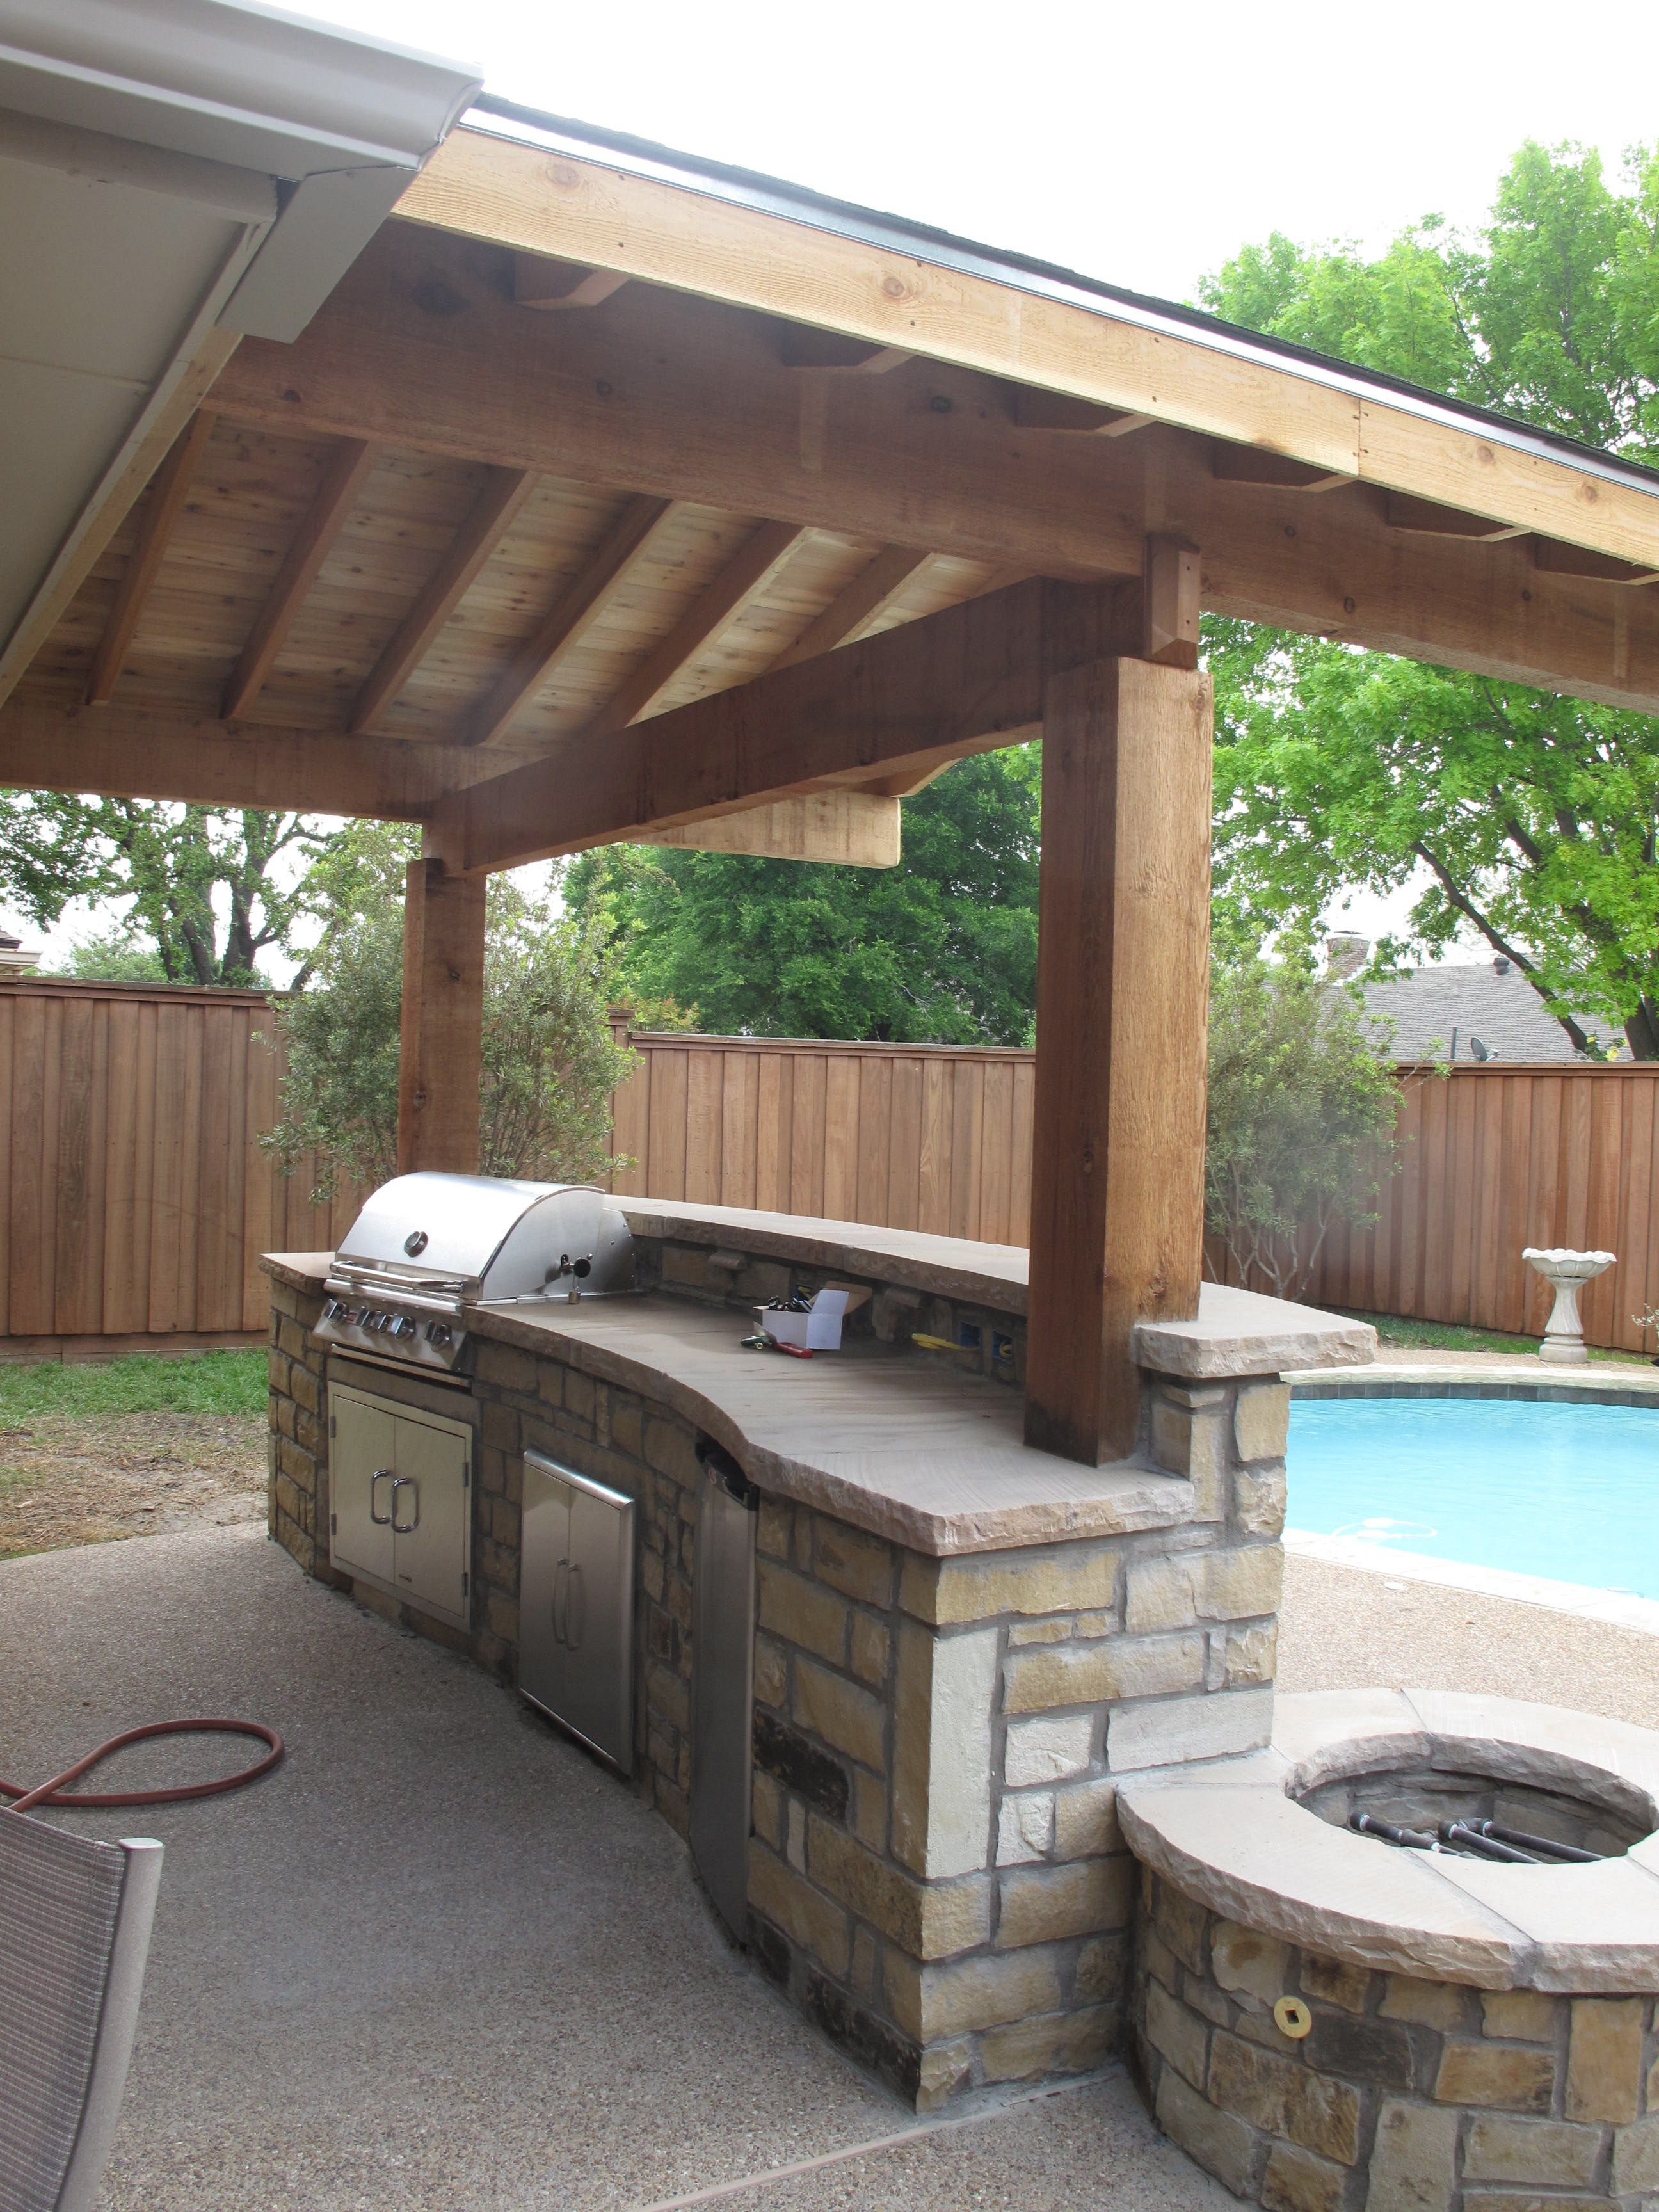 1000 images about outdoor living on mybktouch patio decks and pool in funny ideas  outdoor kitchen plans Fun Ideas for Outdoor Kitchen Plans